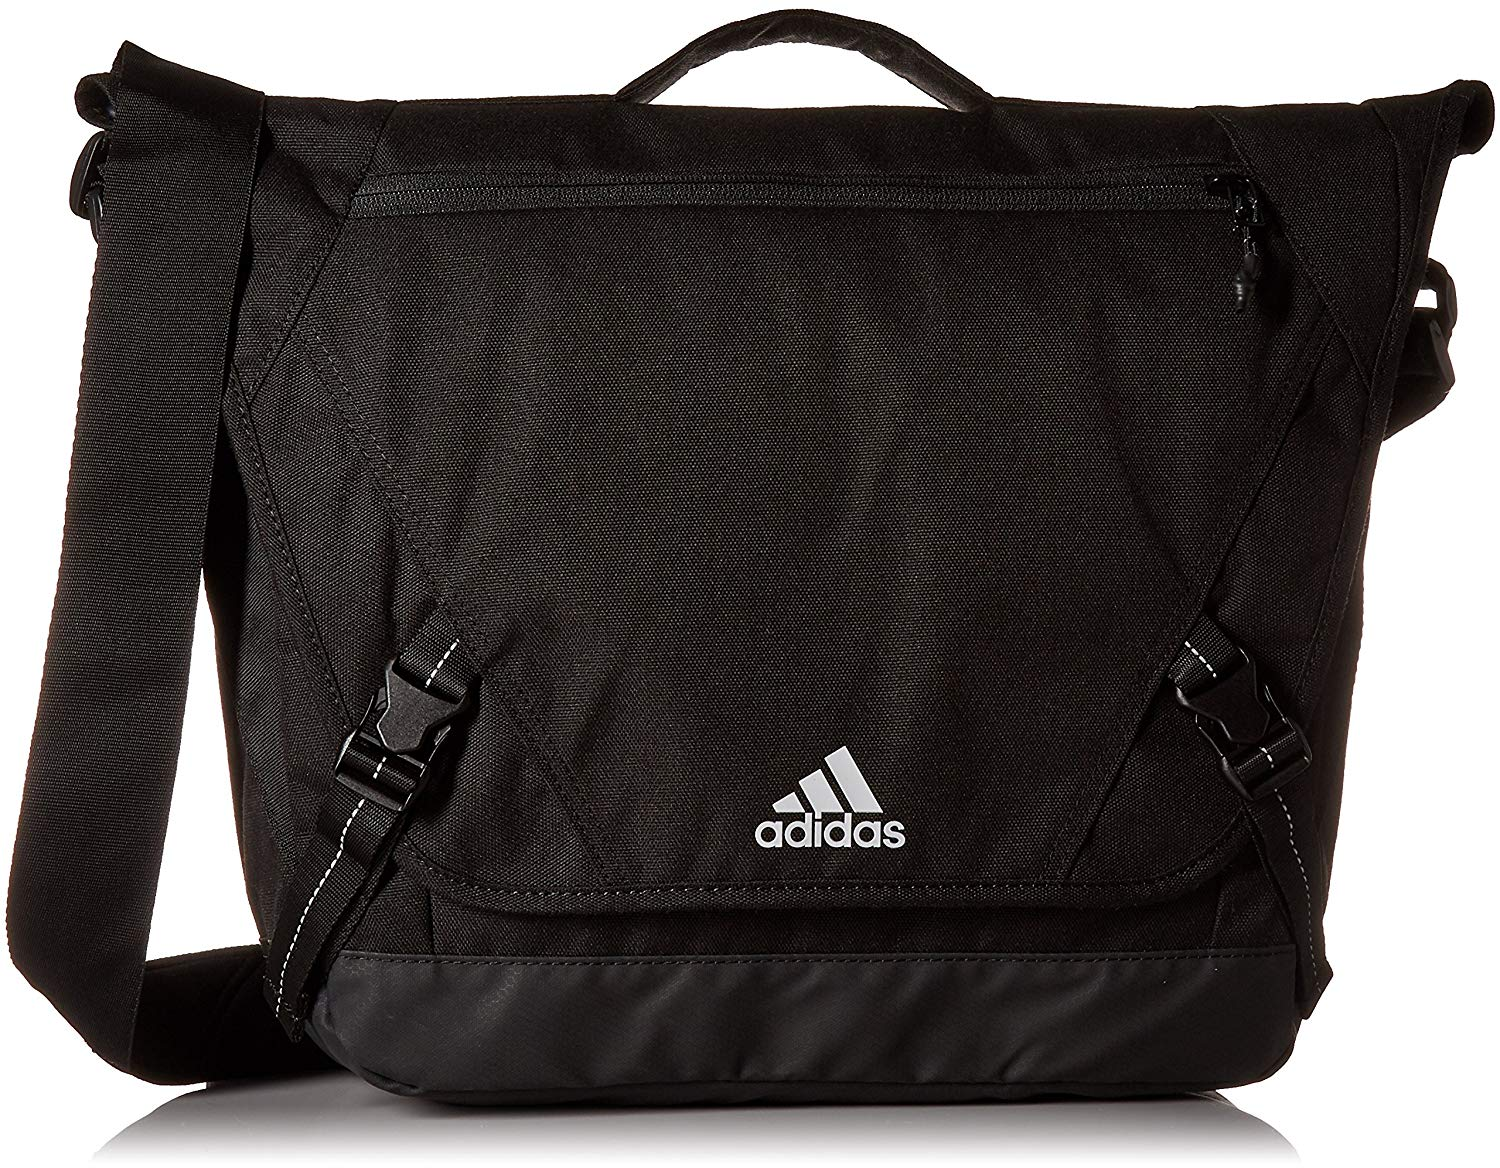 d9ae6c4c02cb Head over to Amazon and get this adidas Sport ID Messenger Bag in color  Black on sale for  23.21 (Reg.  65). This bag is made of 100% Polyester.